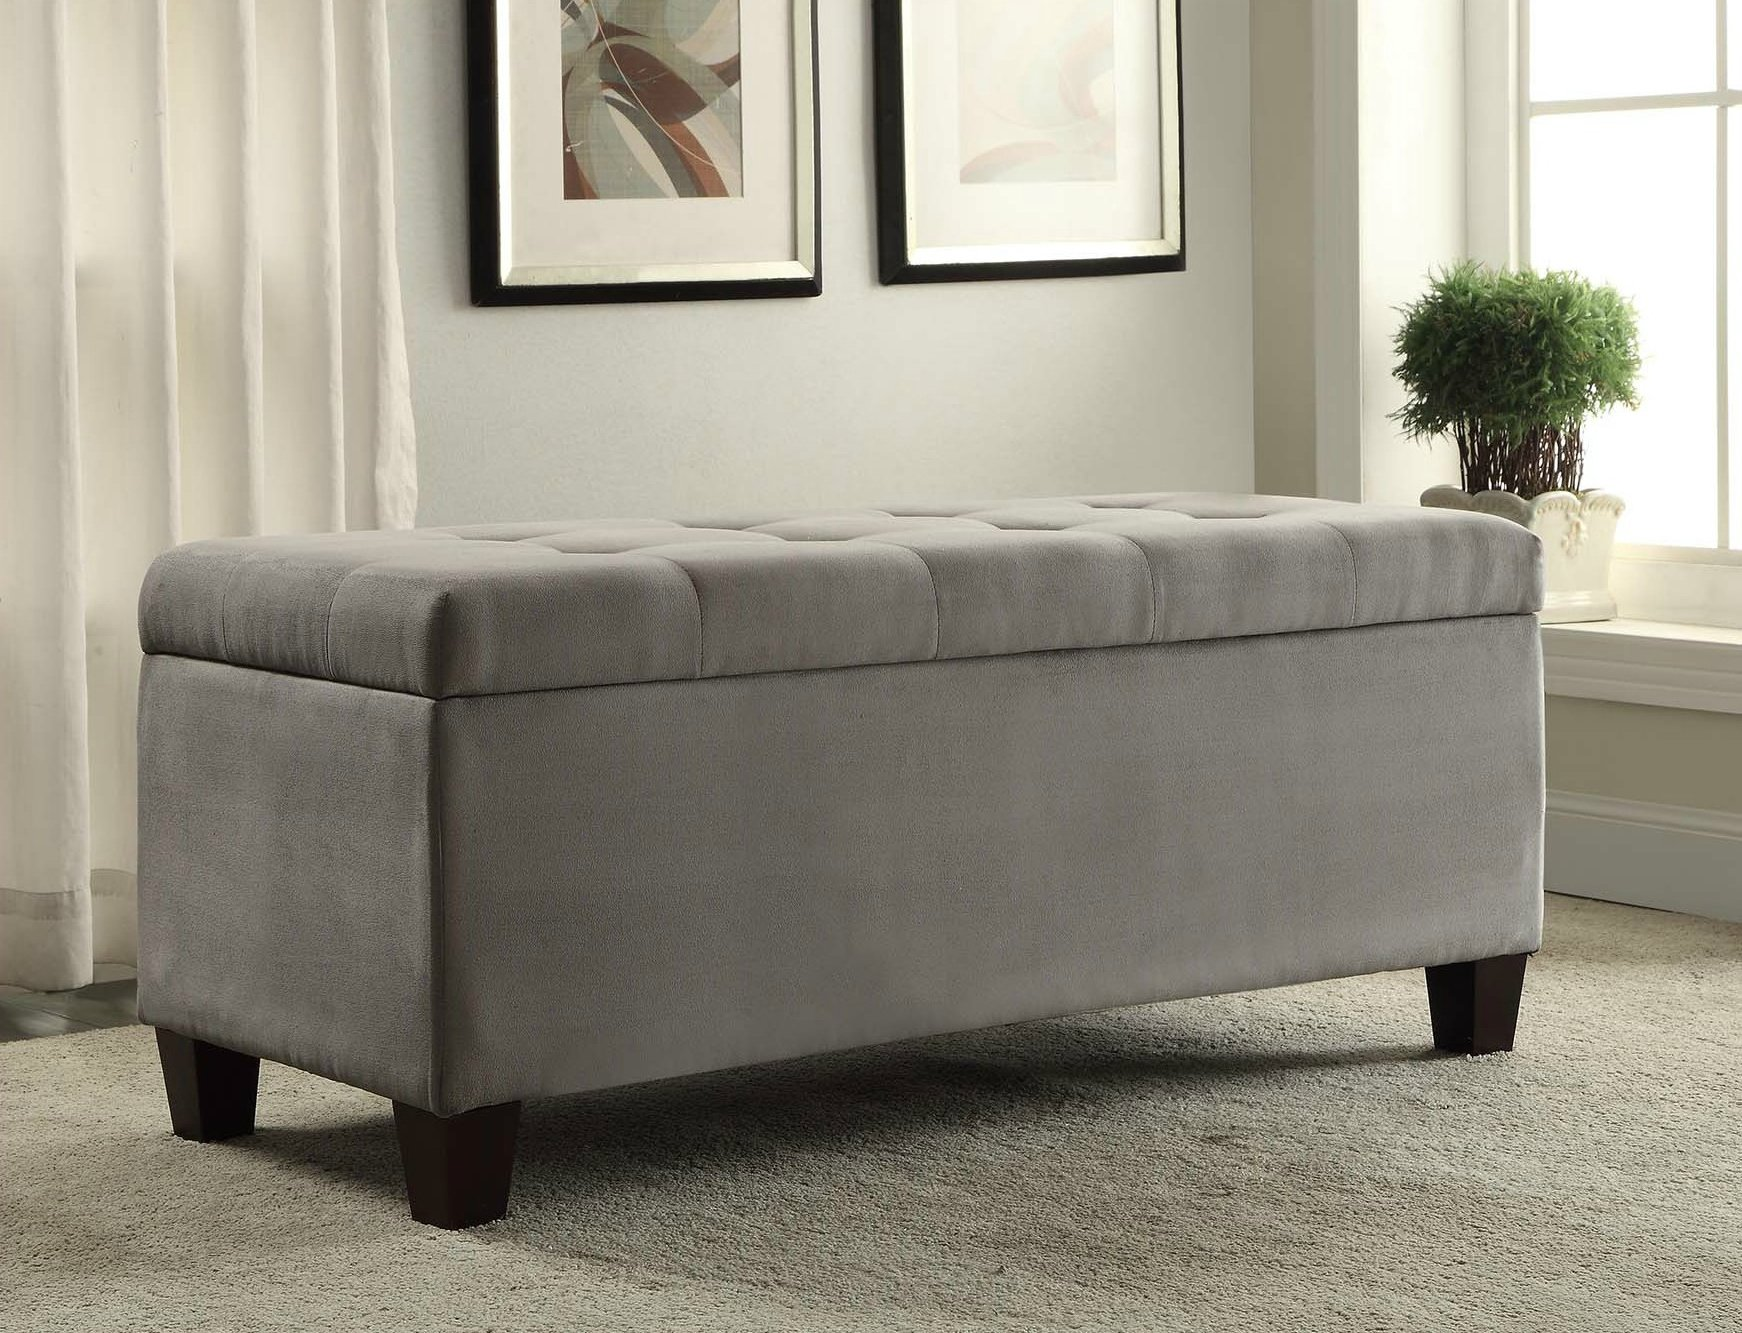 Sturdy Gray Tufted Flip Top Spacious Storage Ottoman With Detachable Shoe Holders